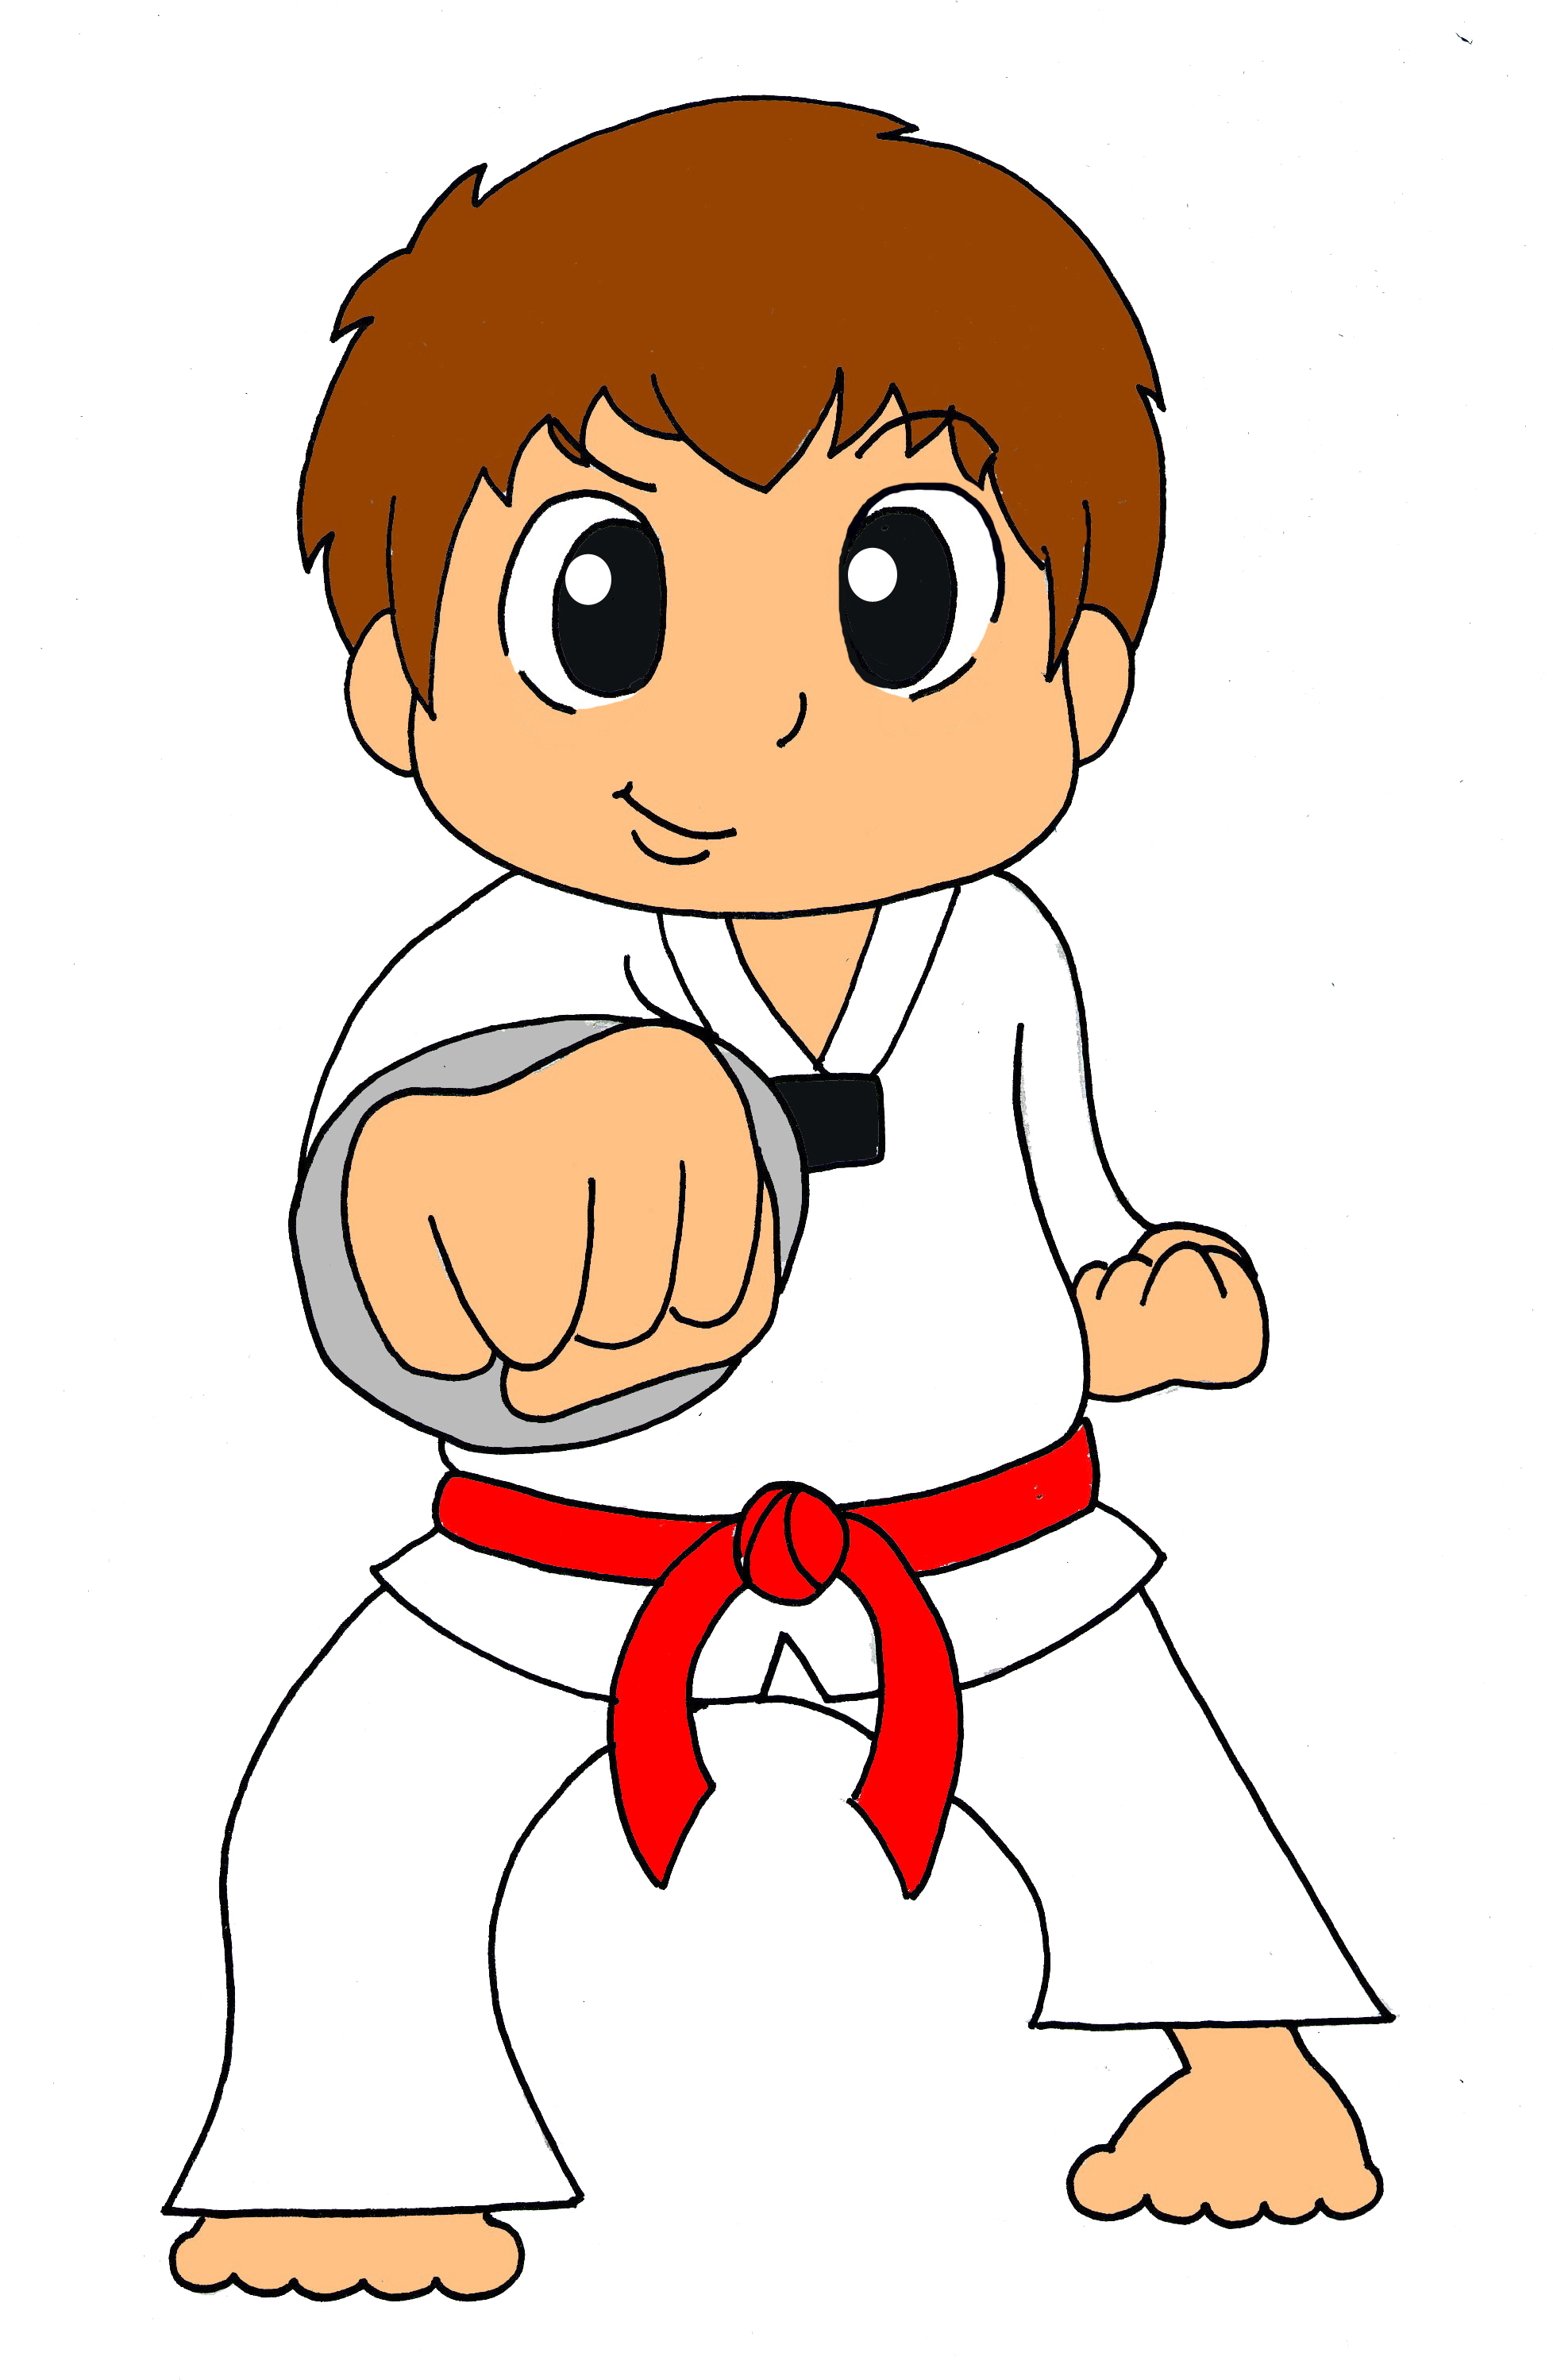 Louisiana Sport Taekwondo - Fun Stuff - ClipArt Best - ClipArt Best